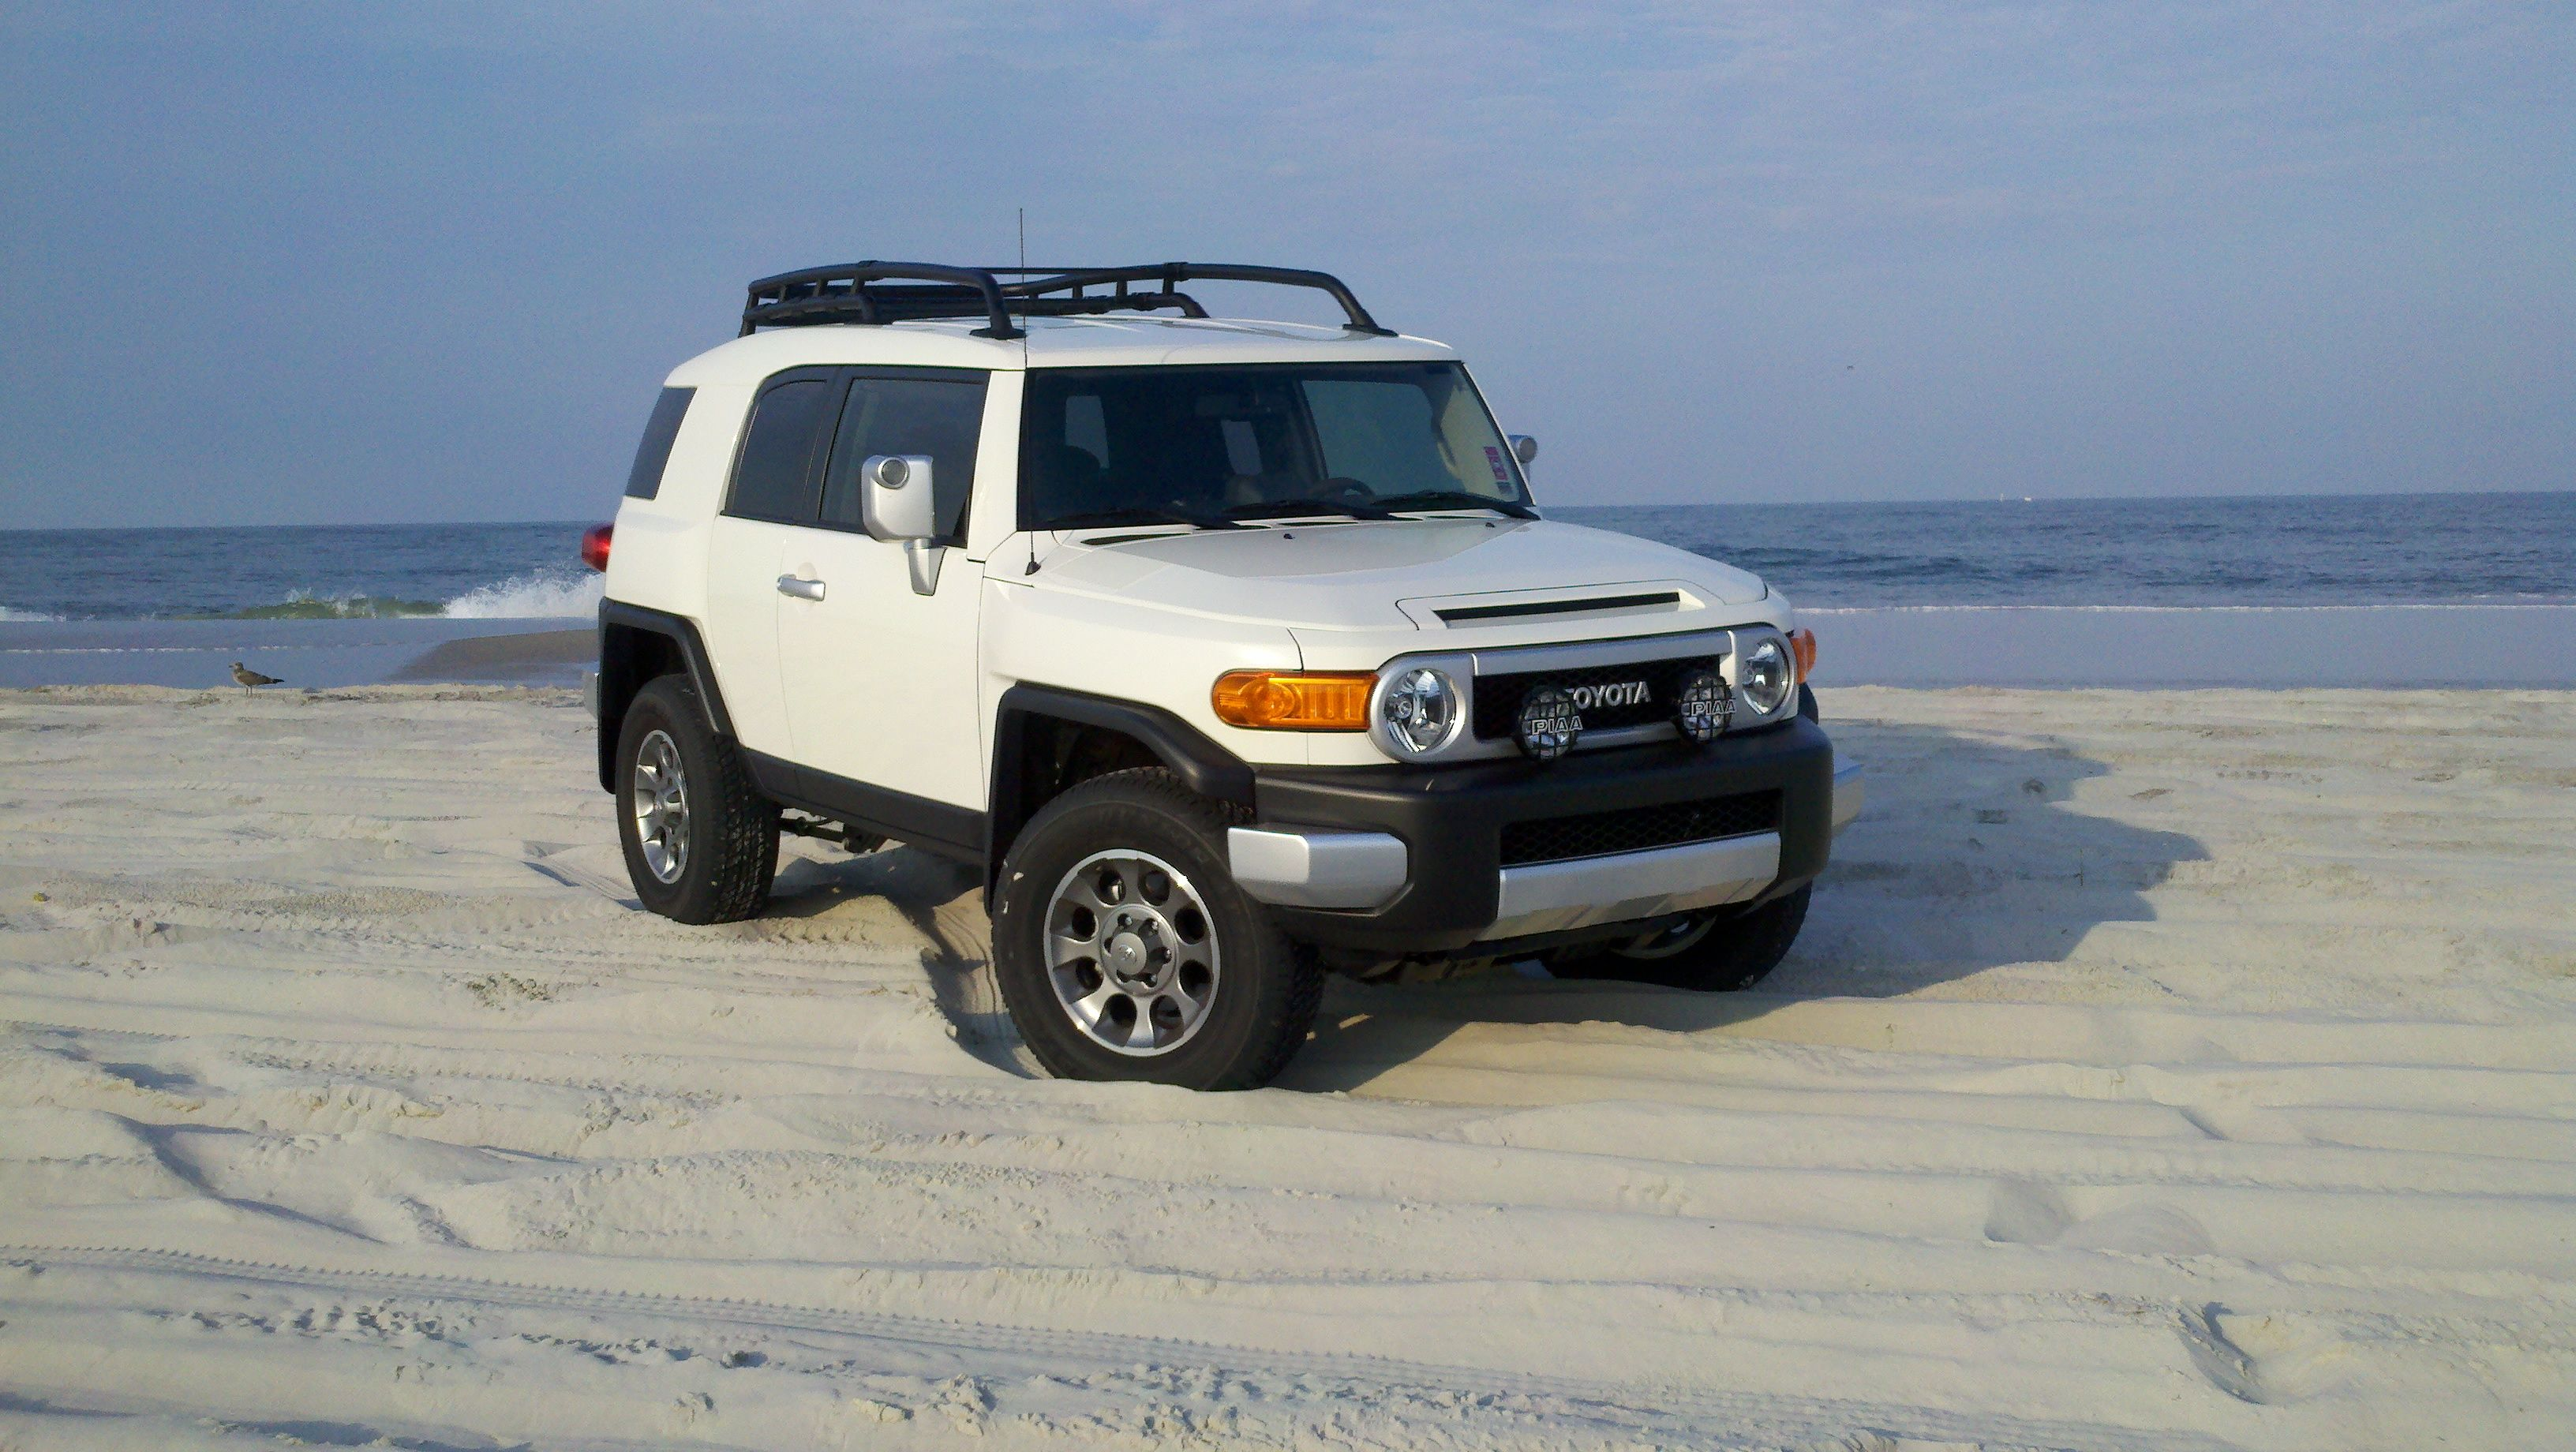 FJ Cruiser Iceberg White  Fj Cruiser  Pinterest  Click Keys